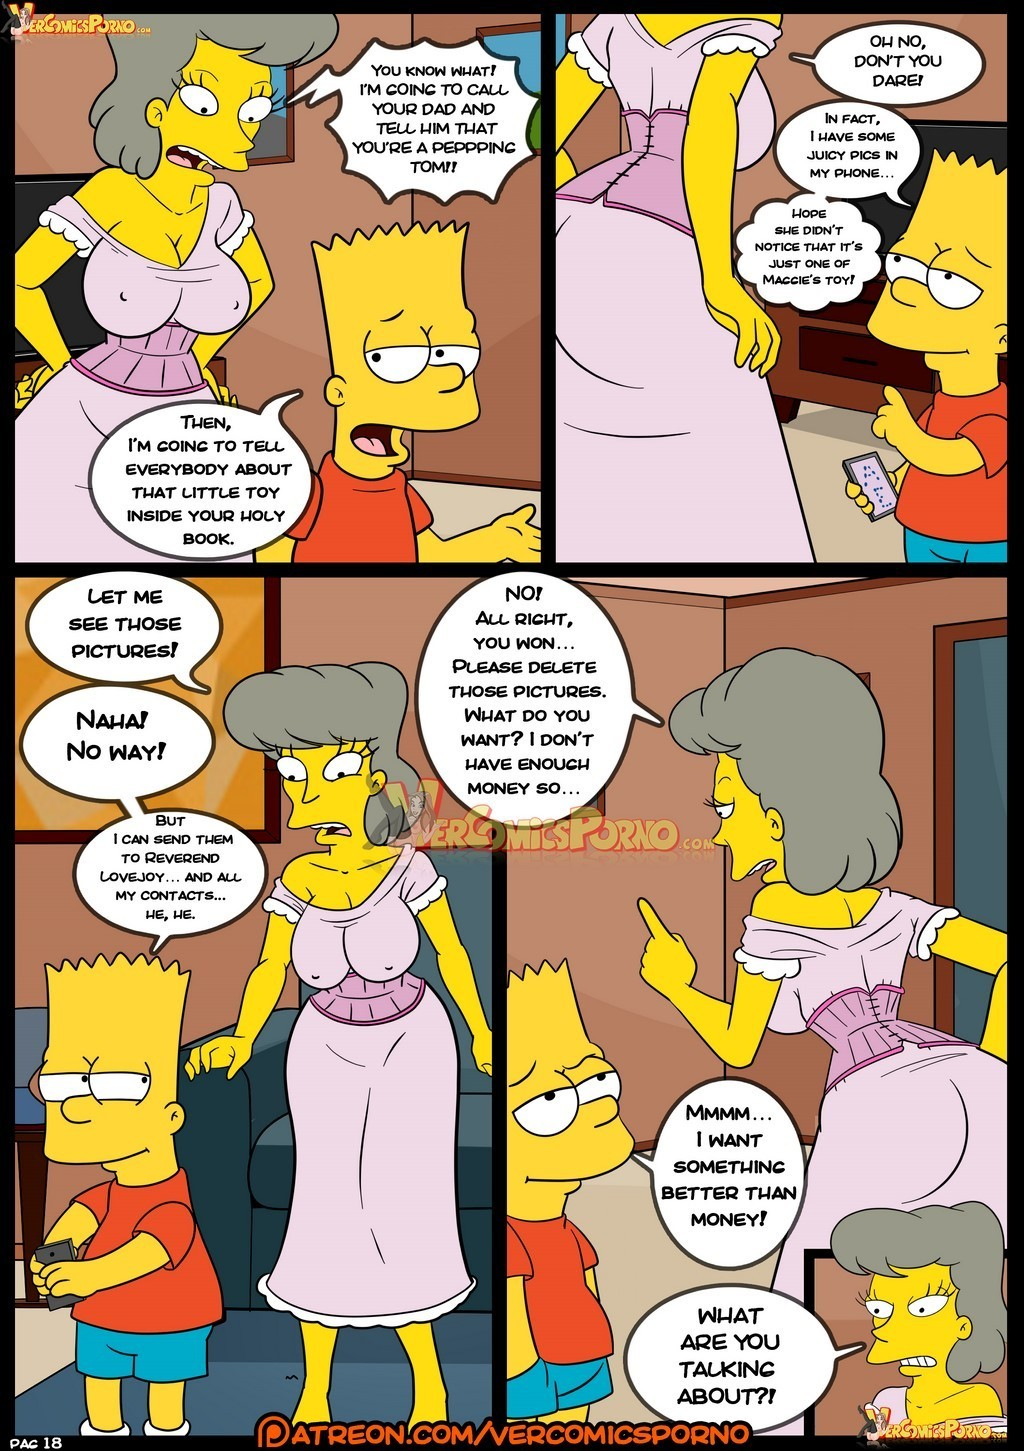 19 3 - The Simpsons. Part 8.